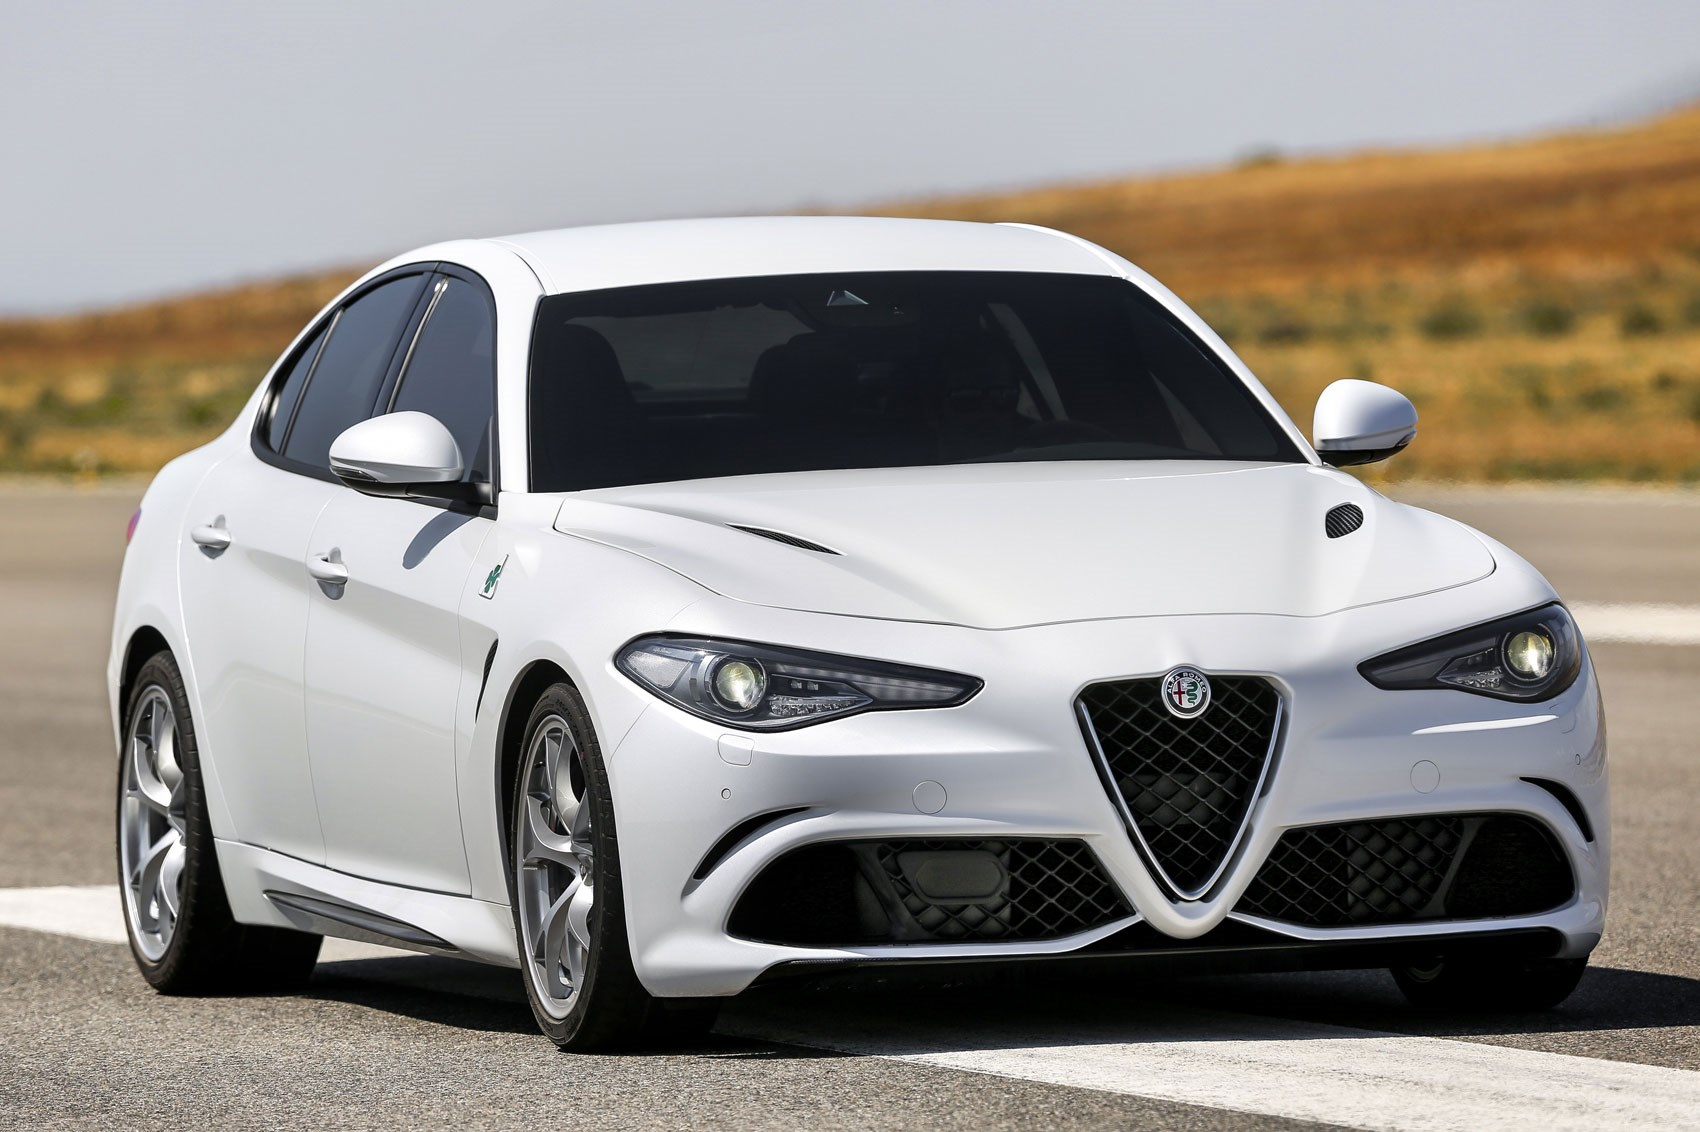 Alfa Romeo Giulia 2016 In Pictures And On Video It S The New 159